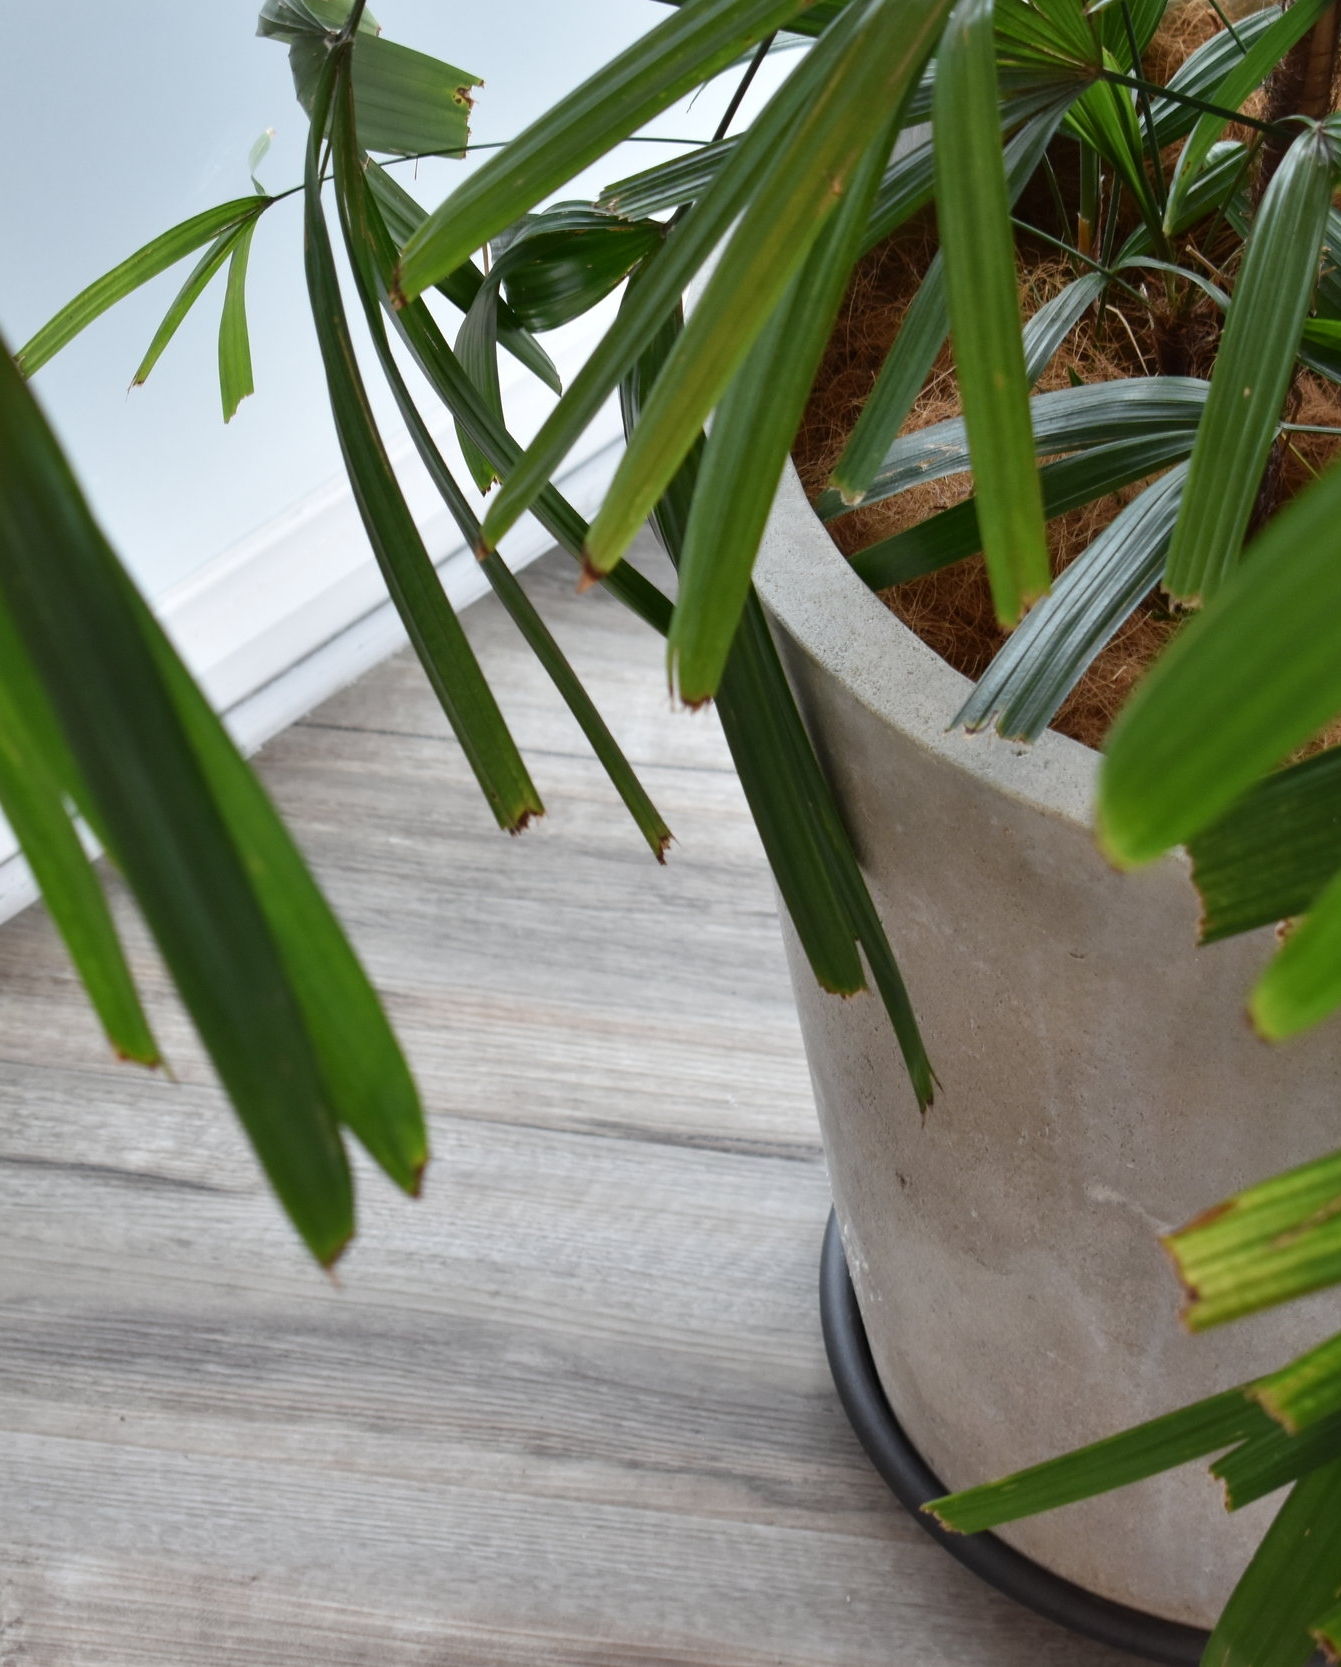 This existing plant added some much needed greenery to the entrance, and the texture of the pot matched the flooring perfectly!